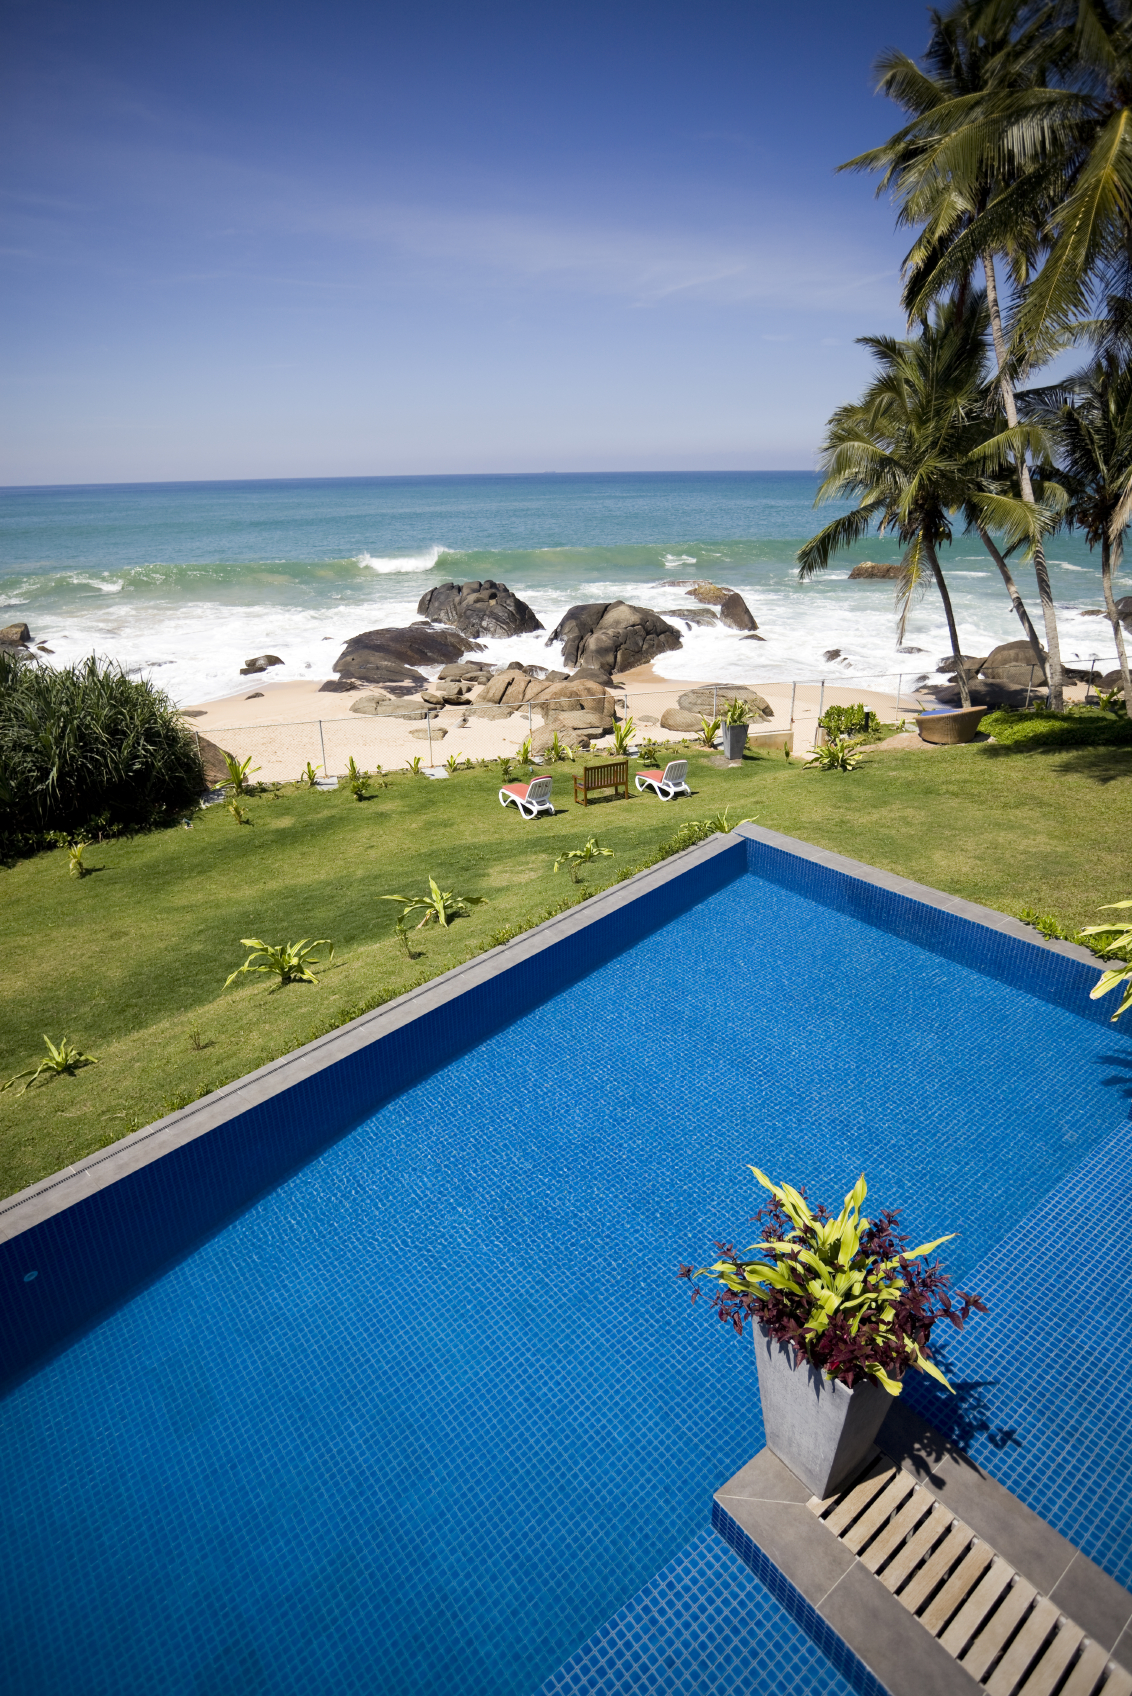 This private pool is enormous and looks out over the beach, which is fenced off from the rest of the property.